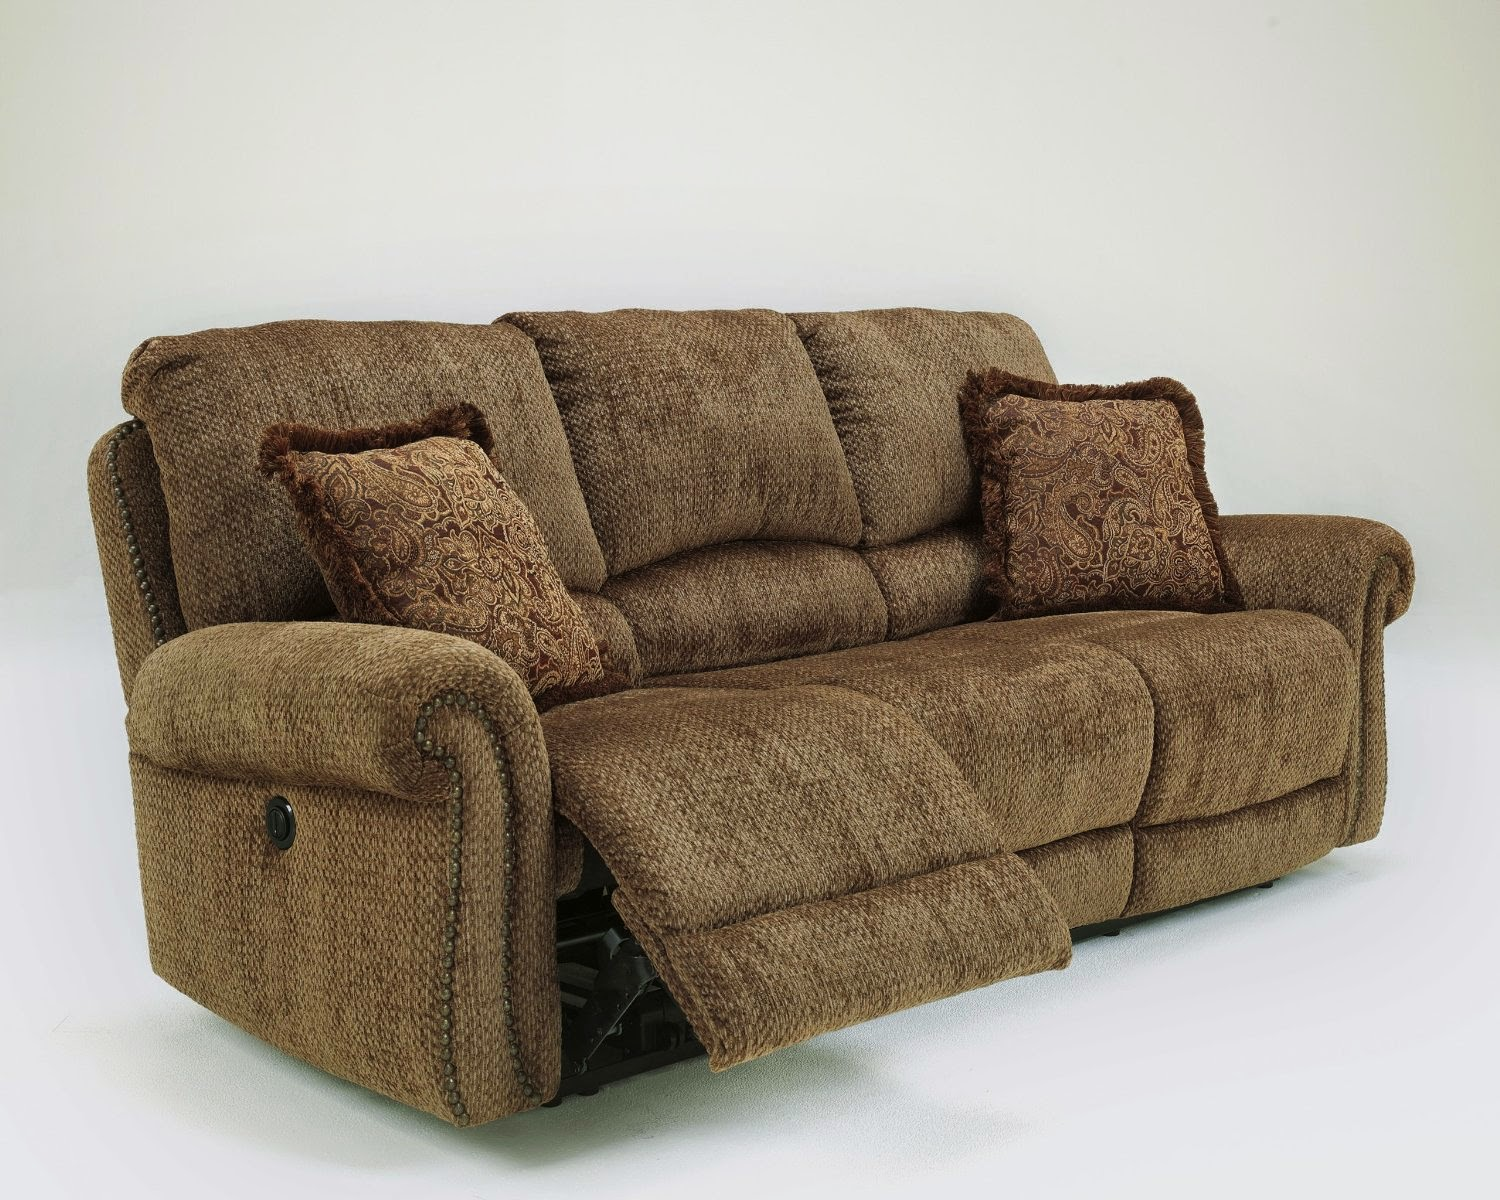 Best Reclining Sofa For The Money: Linden Chenille ...